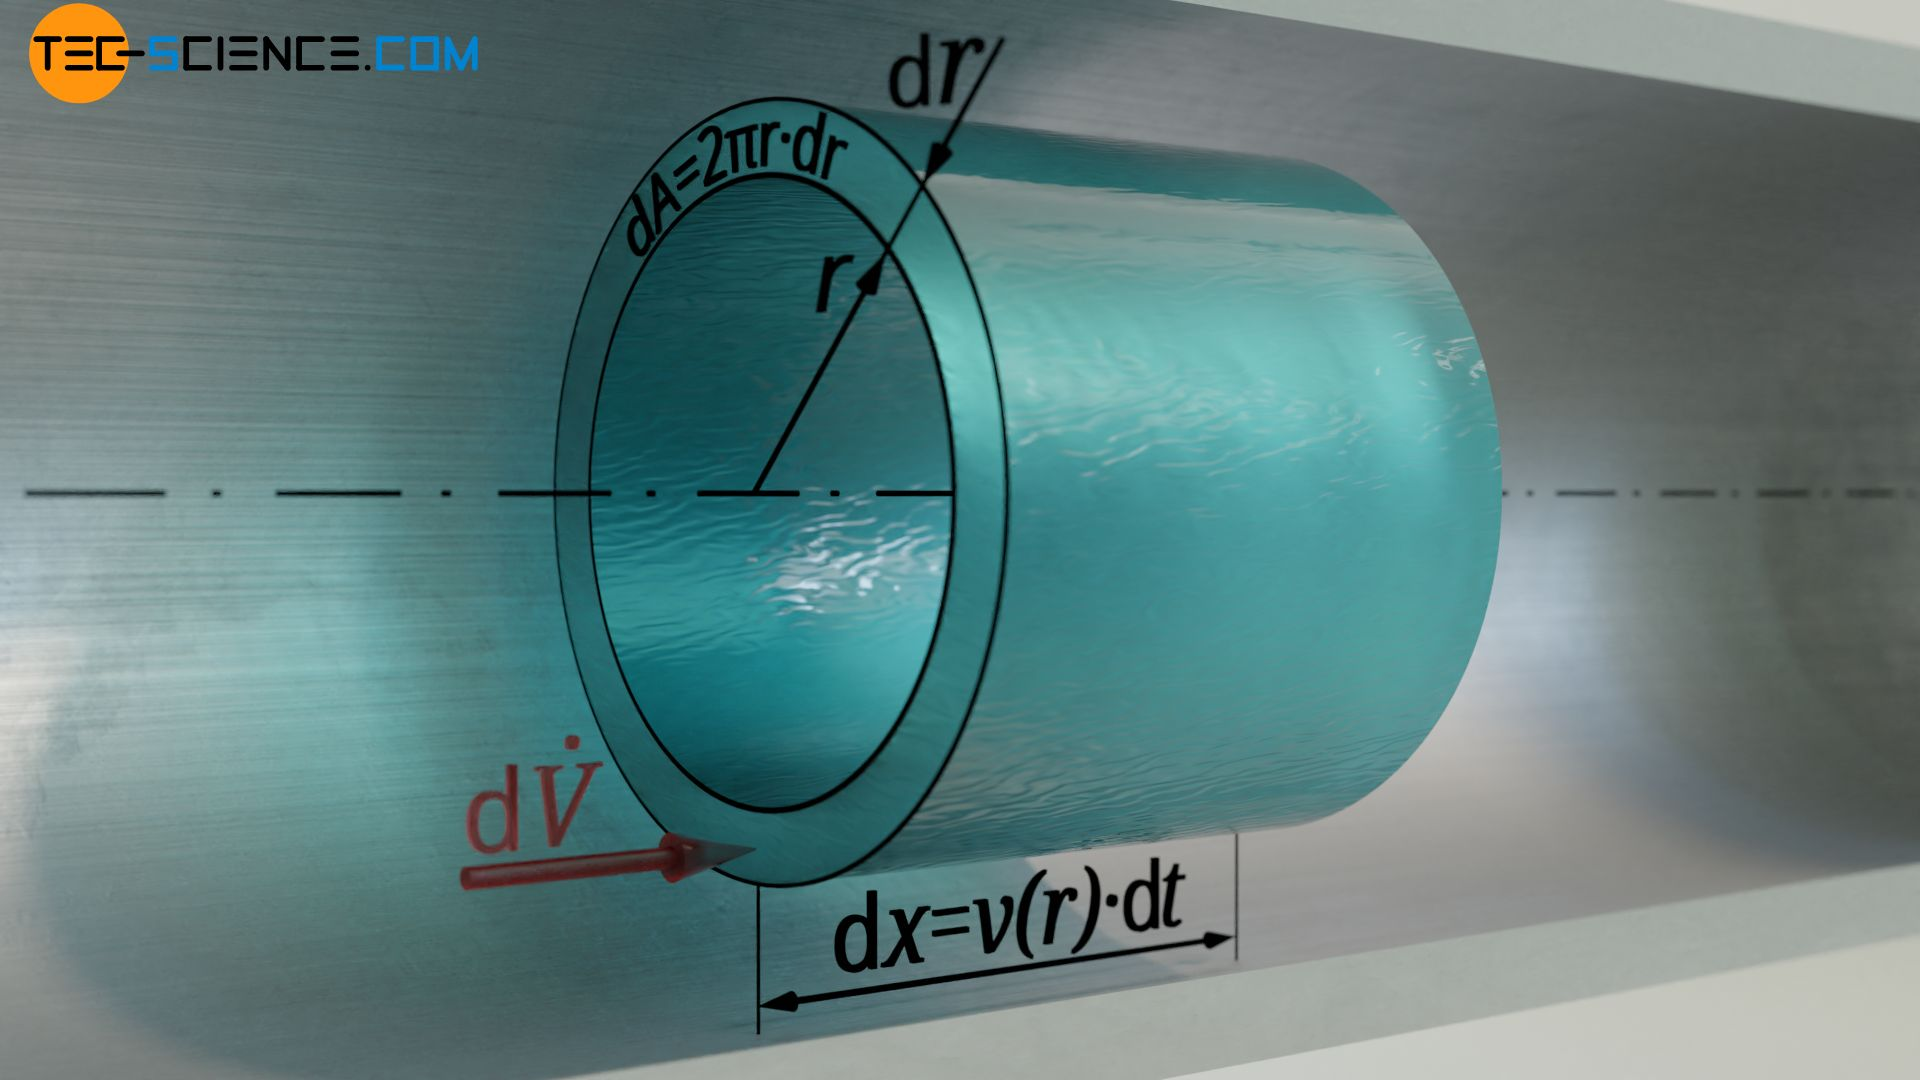 Derivation of the volume flow rate of a Hagen-Poiseuille flow